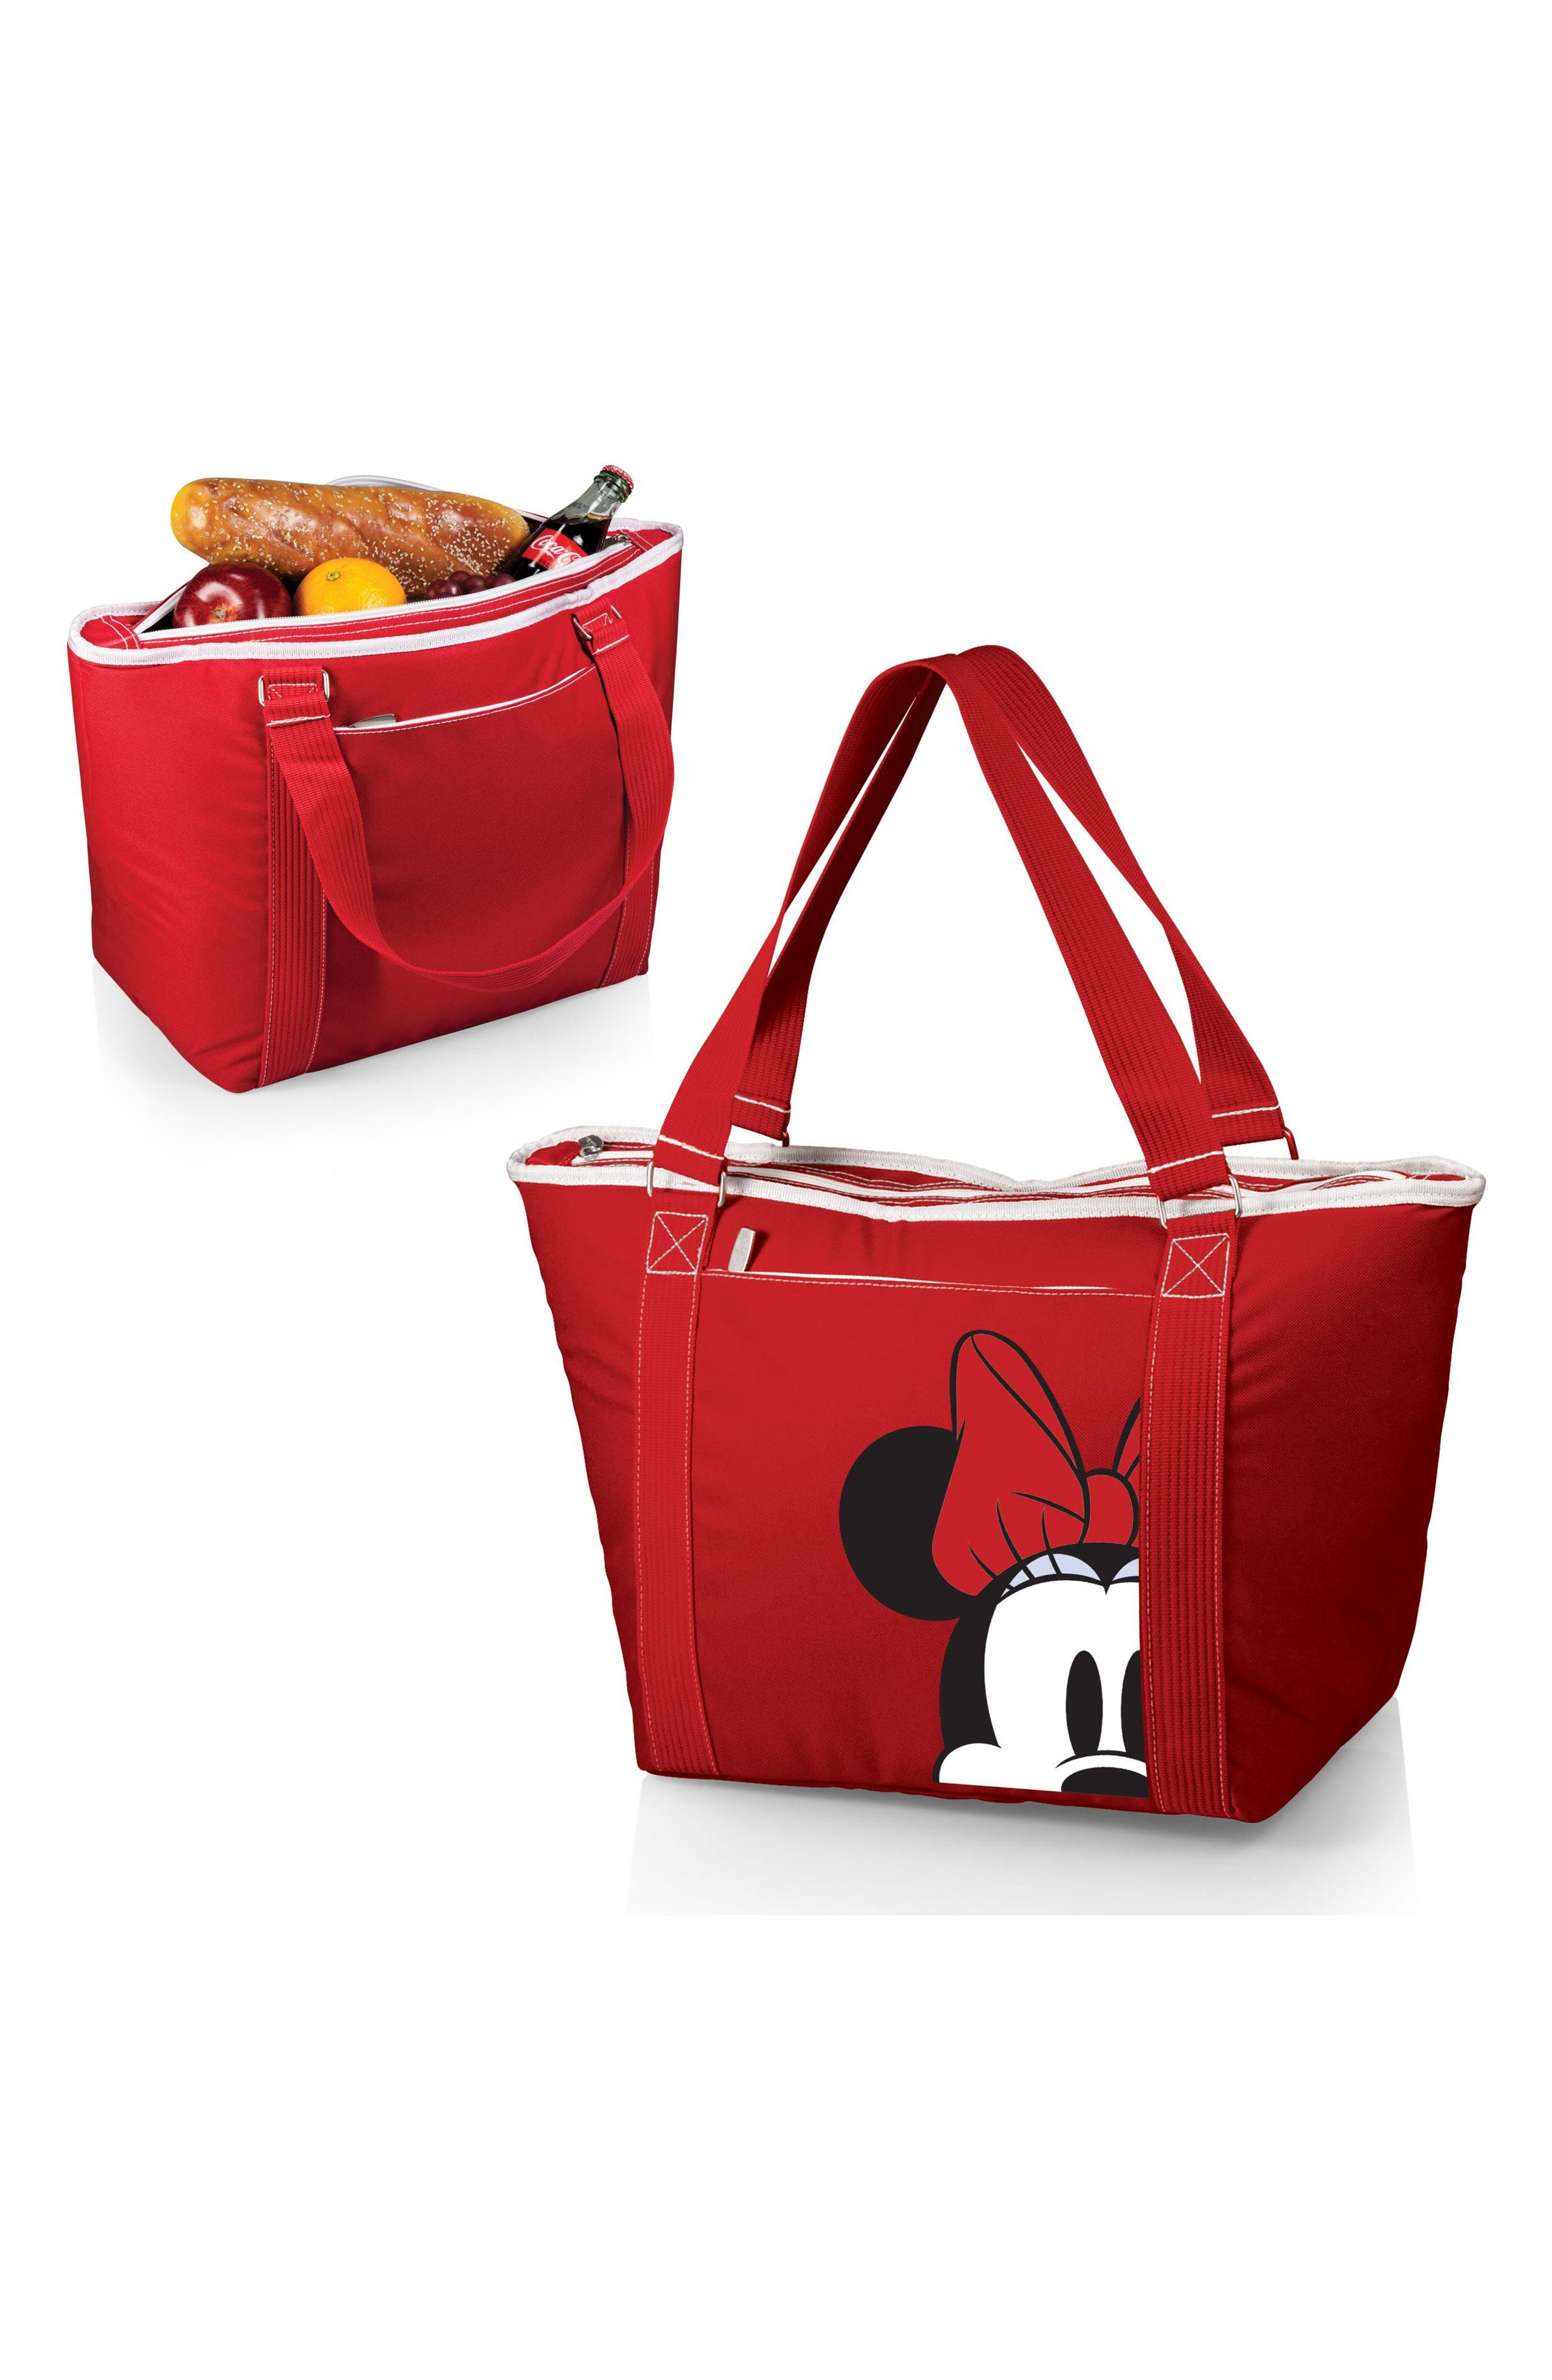 Disney<sup>®</sup> Mickey Mouse Topanga Cooler Tote,                             Alternate thumbnail 2, color,                             Minnie